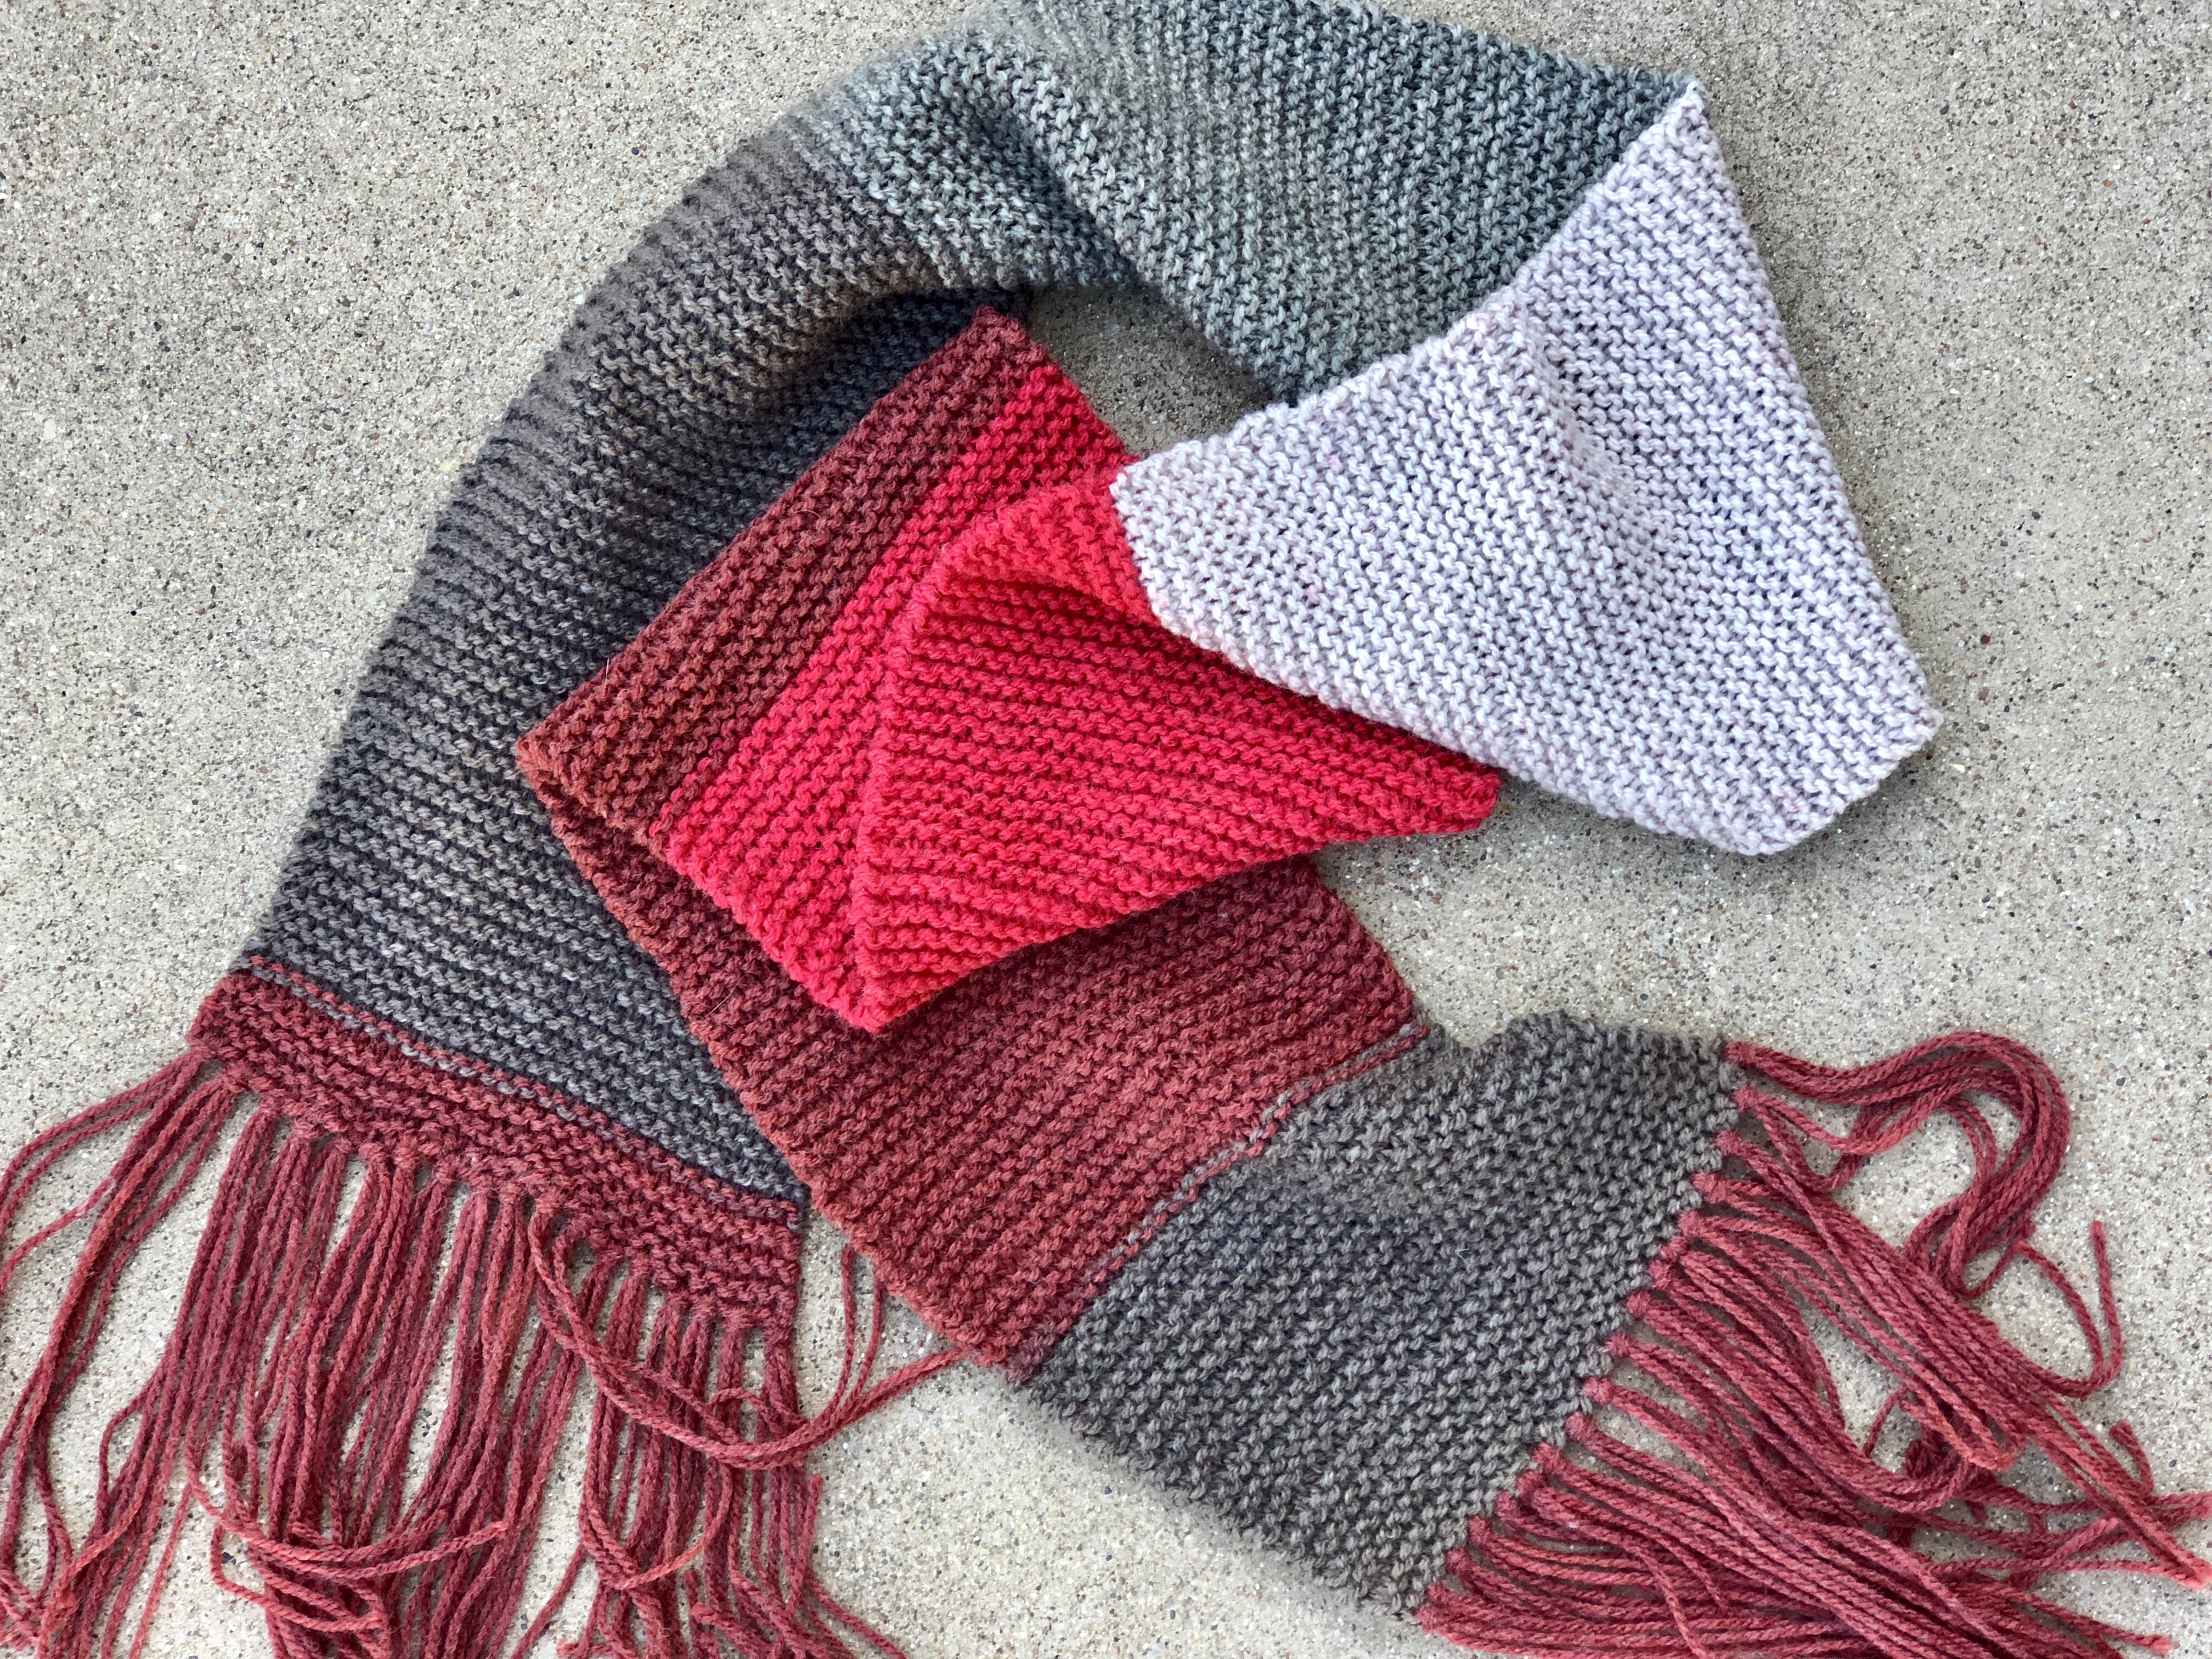 Scarf Patterns Knitting Beginner Free Pattern Review Caron Cakes Basic Knit Scarf Marni Made It